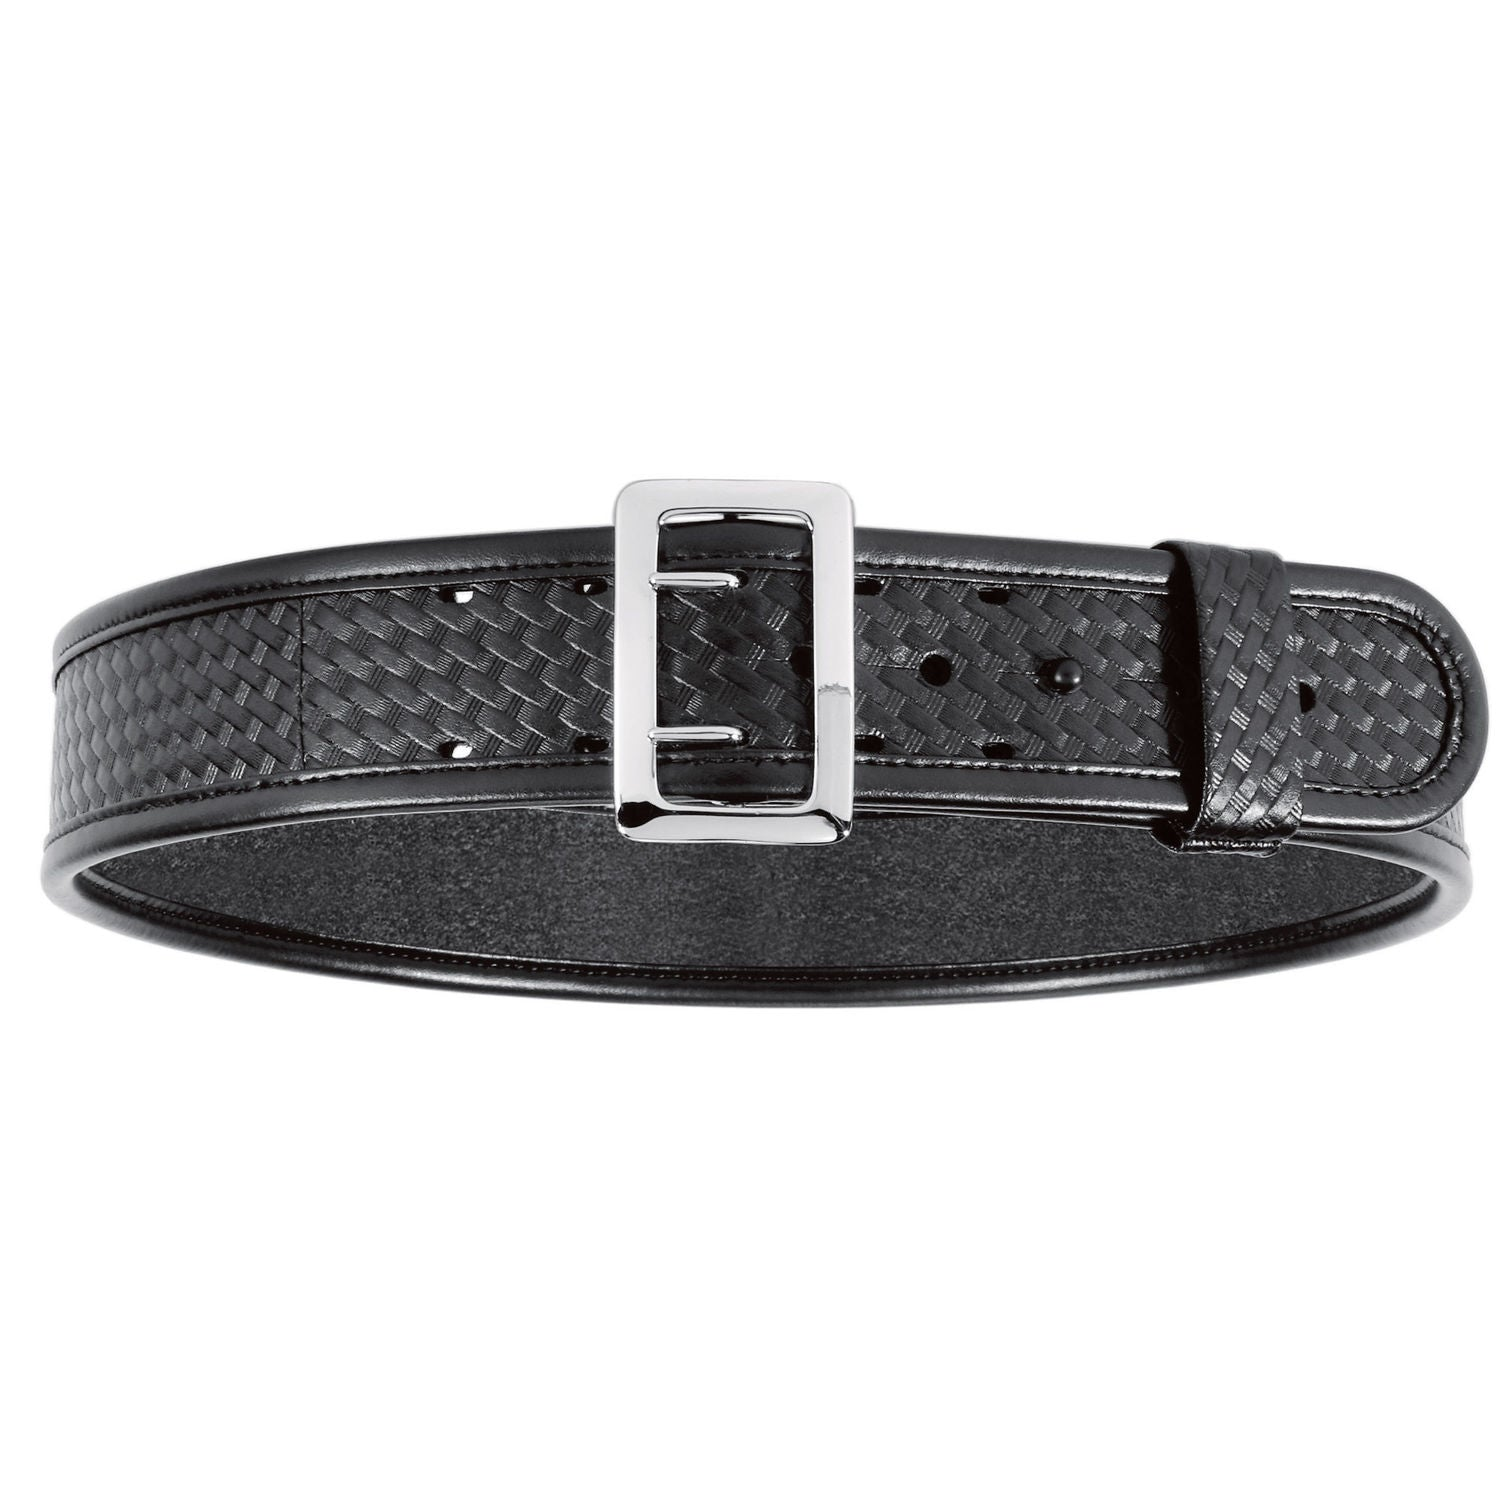 "Bianchi Model 7960 Sam Browne Duty Belt 2.25"" (58mm) - red-diamond-uniform-police-supply"